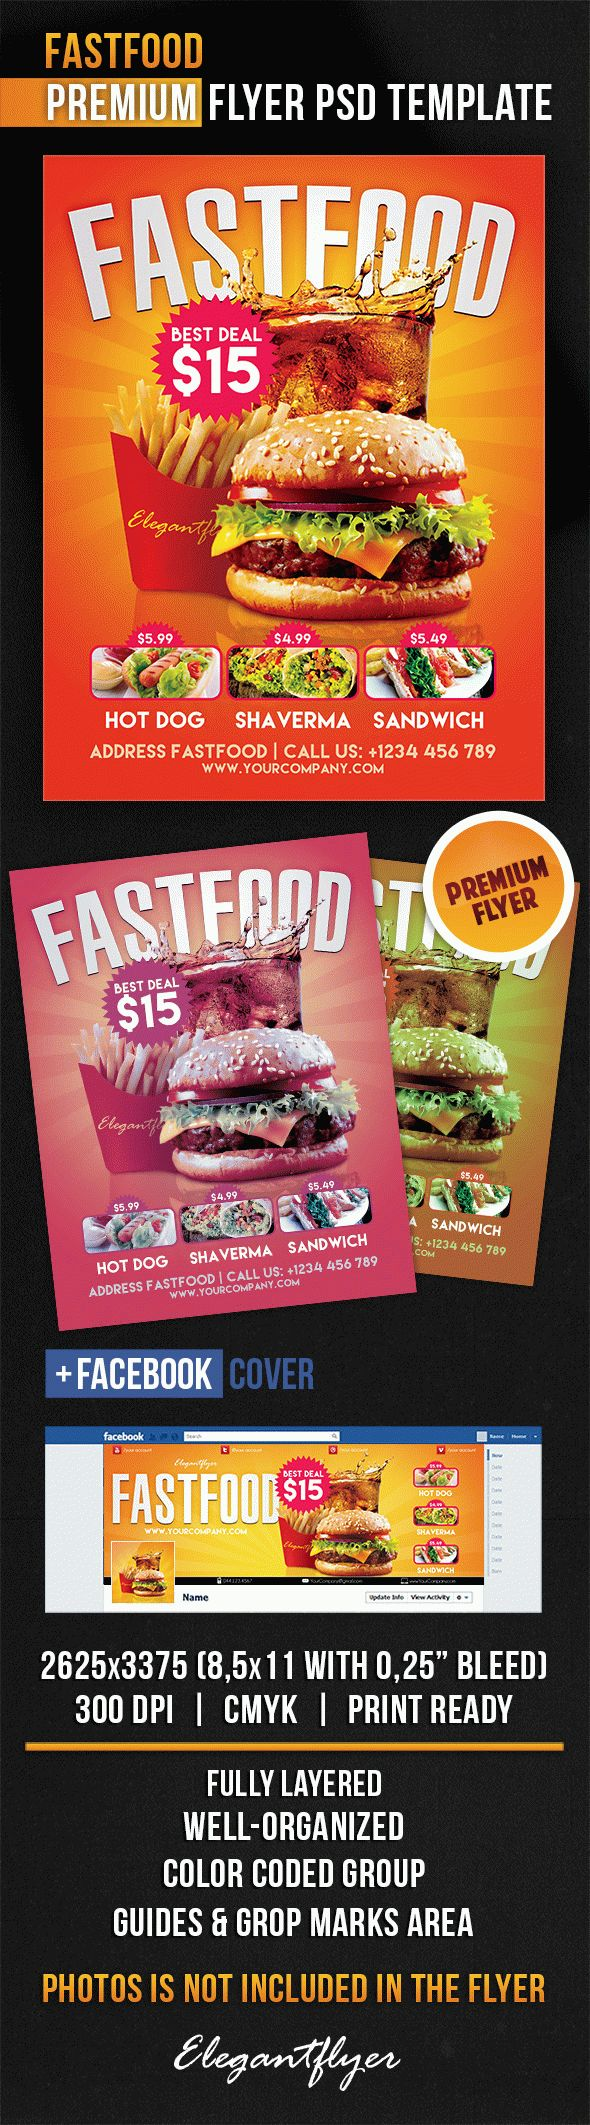 Fastfood – Flyer PSD Template